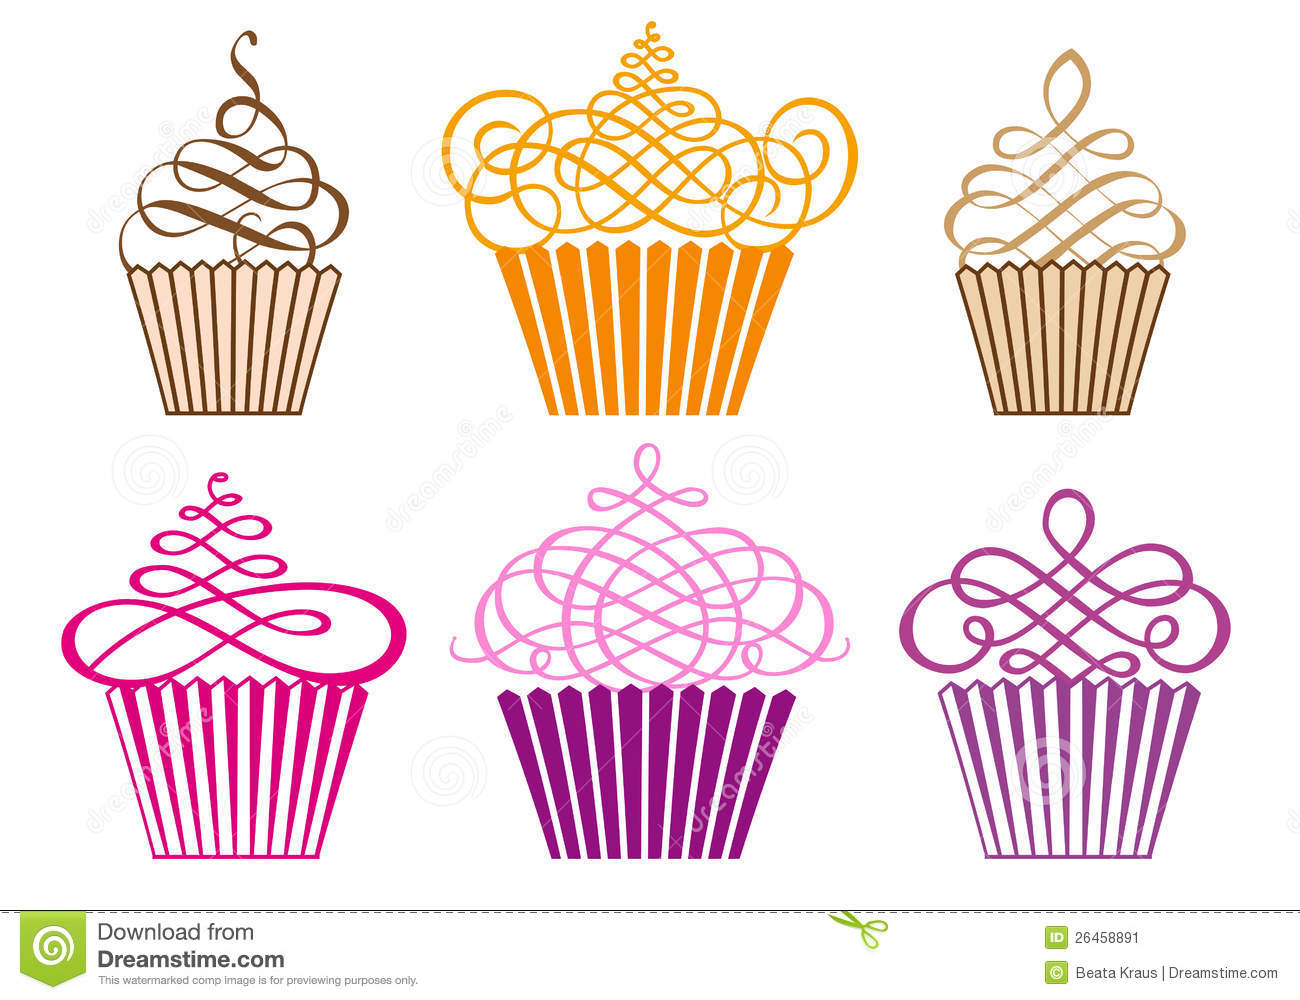 Cake Line Art Vector Free Download : Set of cupcakes, vector stock vector. Image of muffin ...